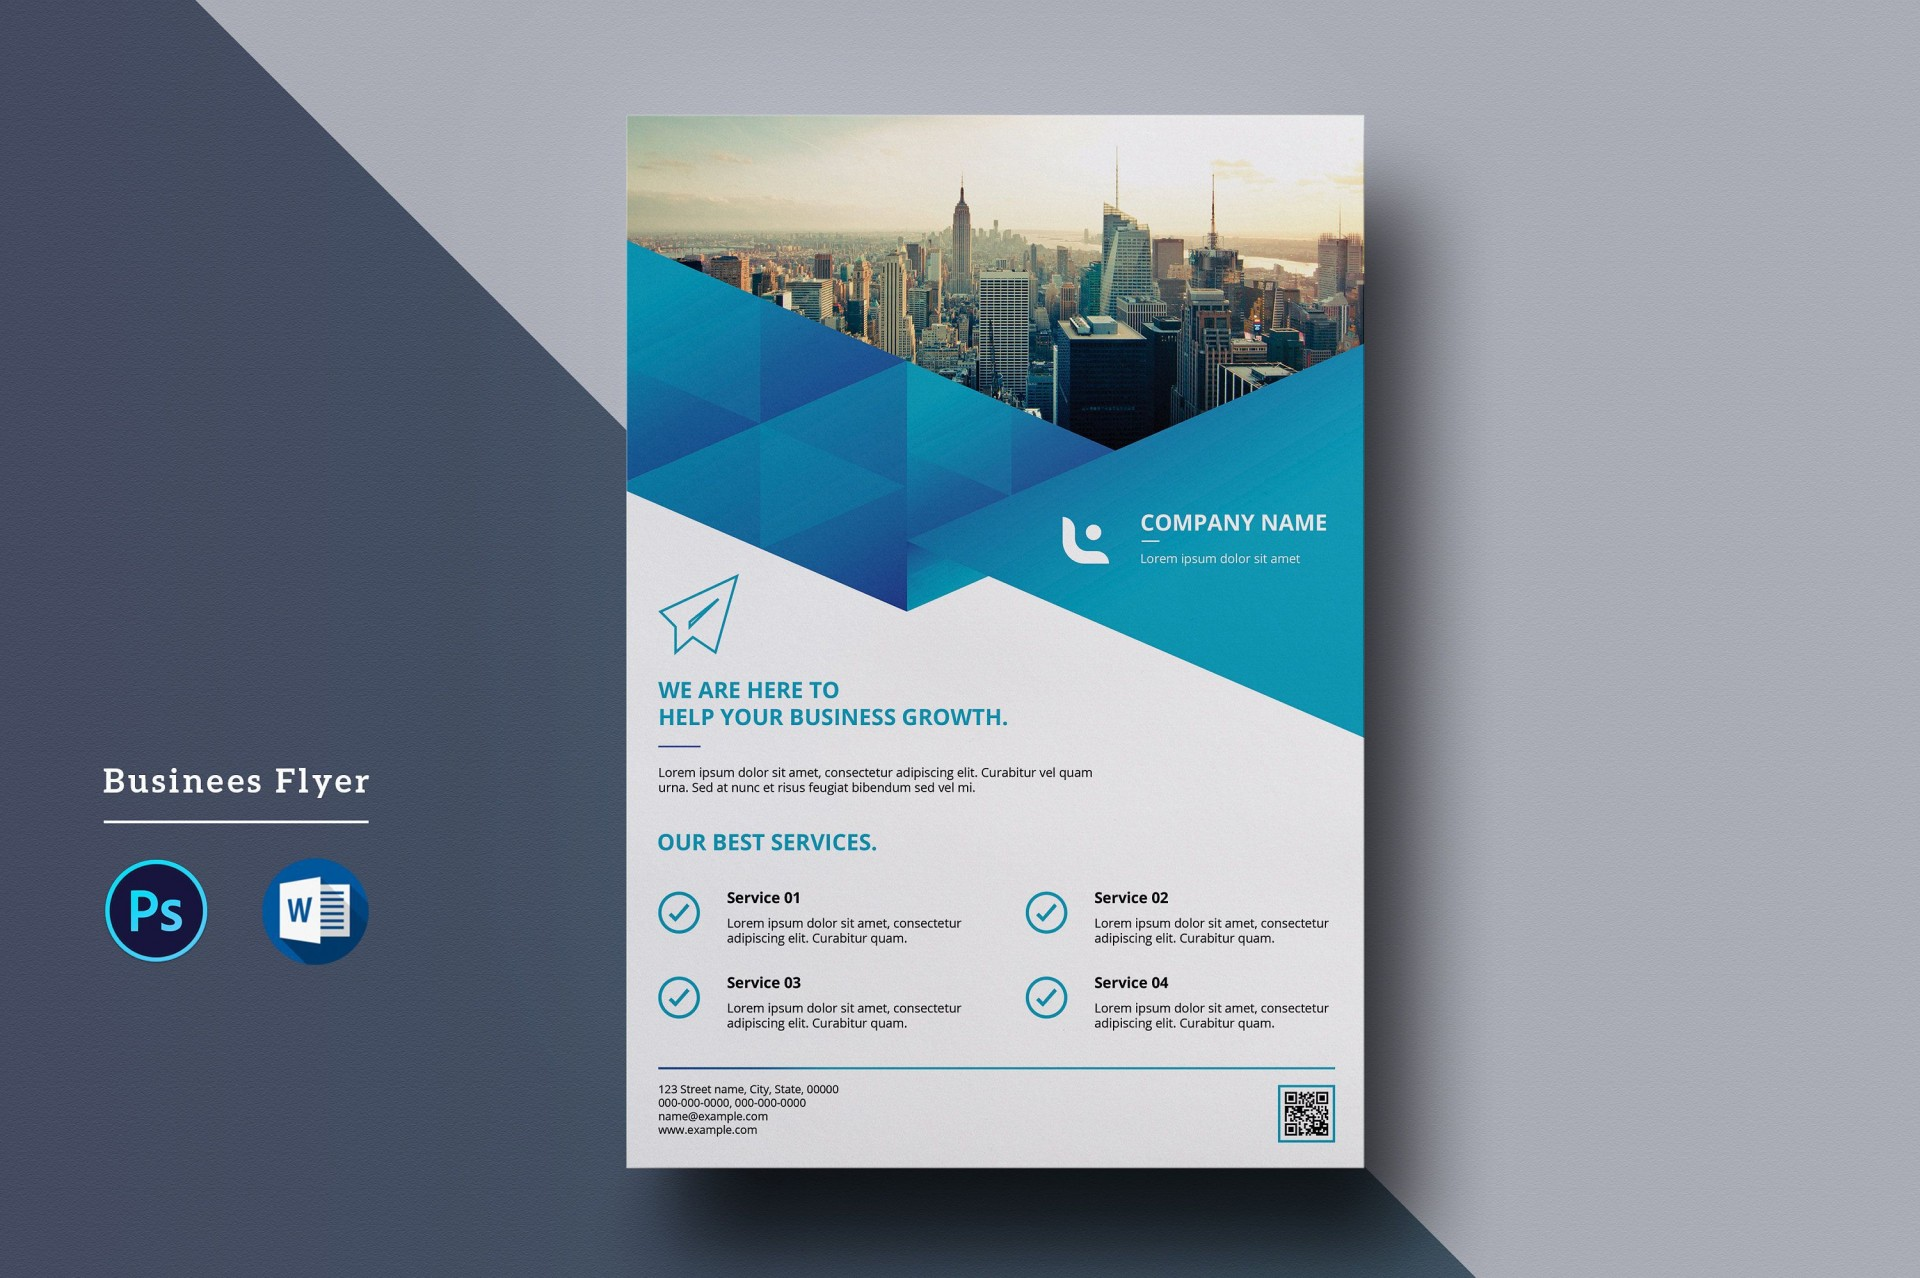 002 Surprising M Word Brochure Template Free Download High Definition  Microsoft 20071920